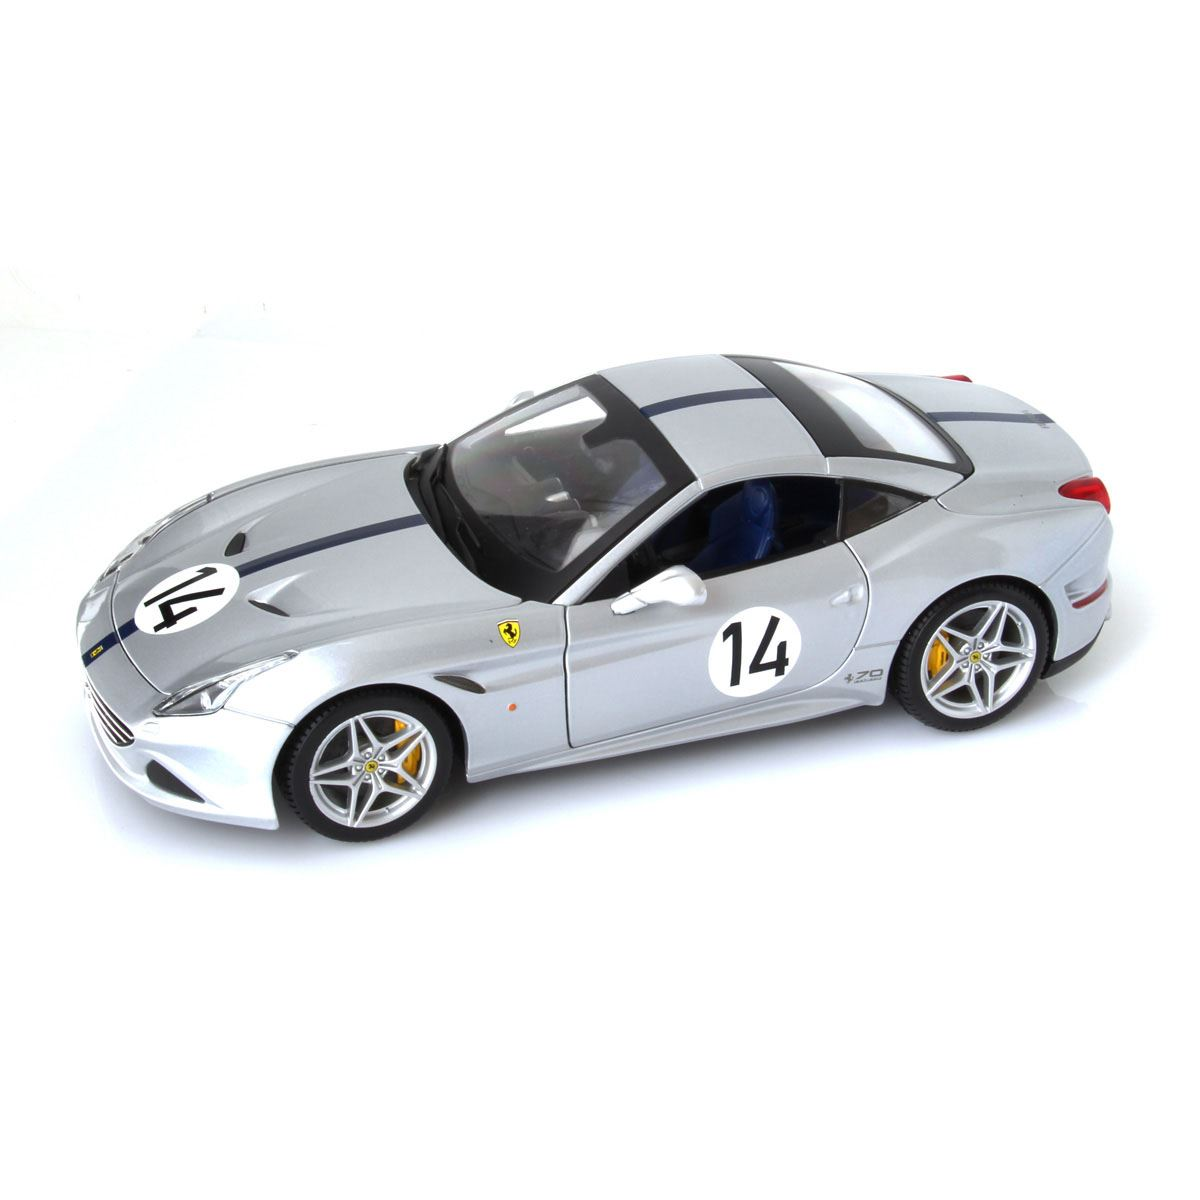 Ferrari California T The Hot Rod N